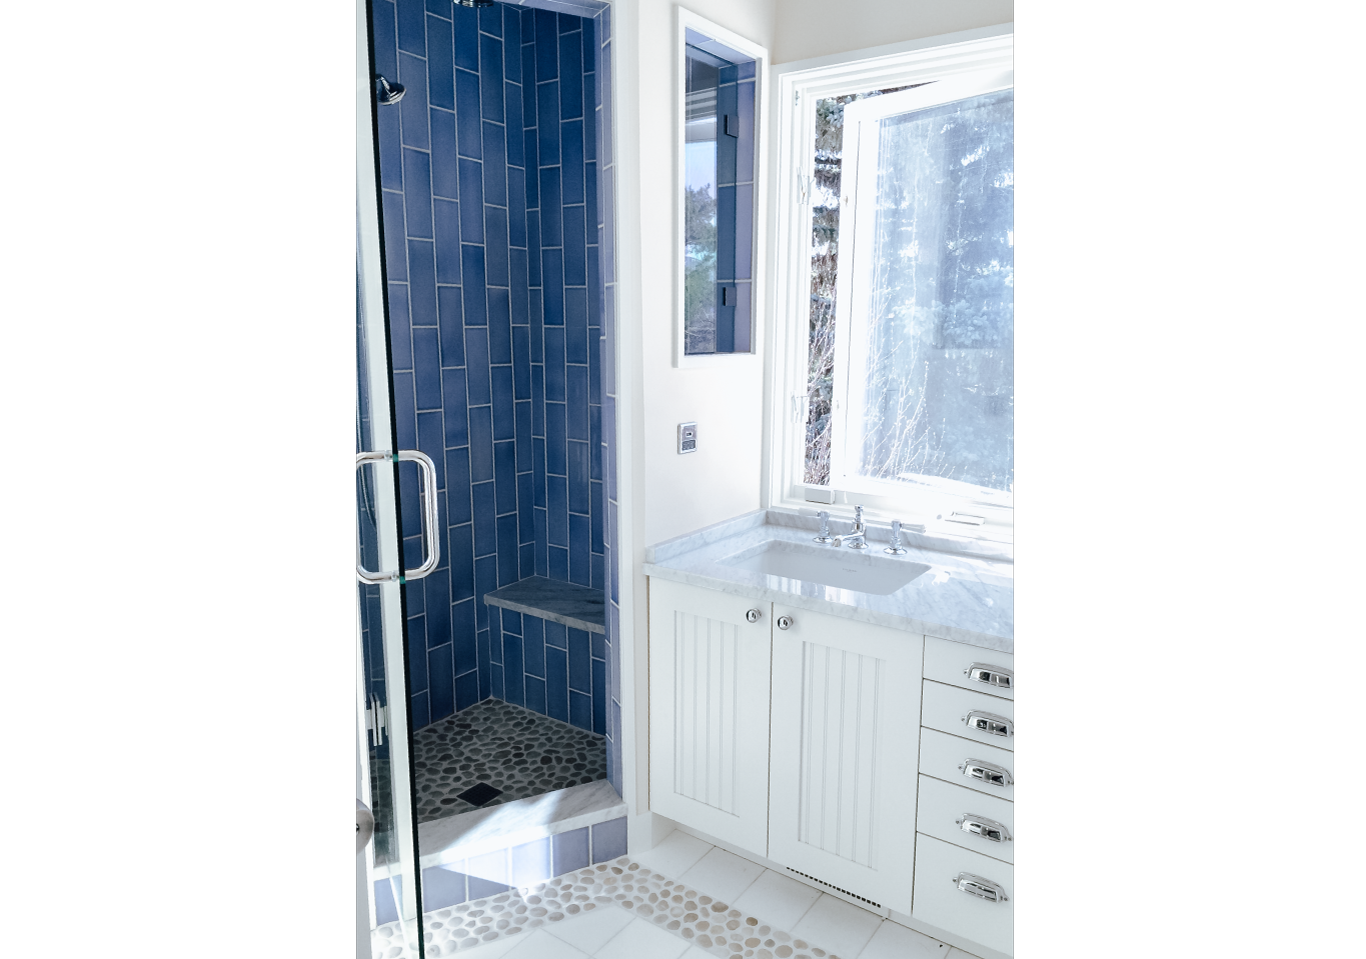 Blue vertical tiled shower next to white counter